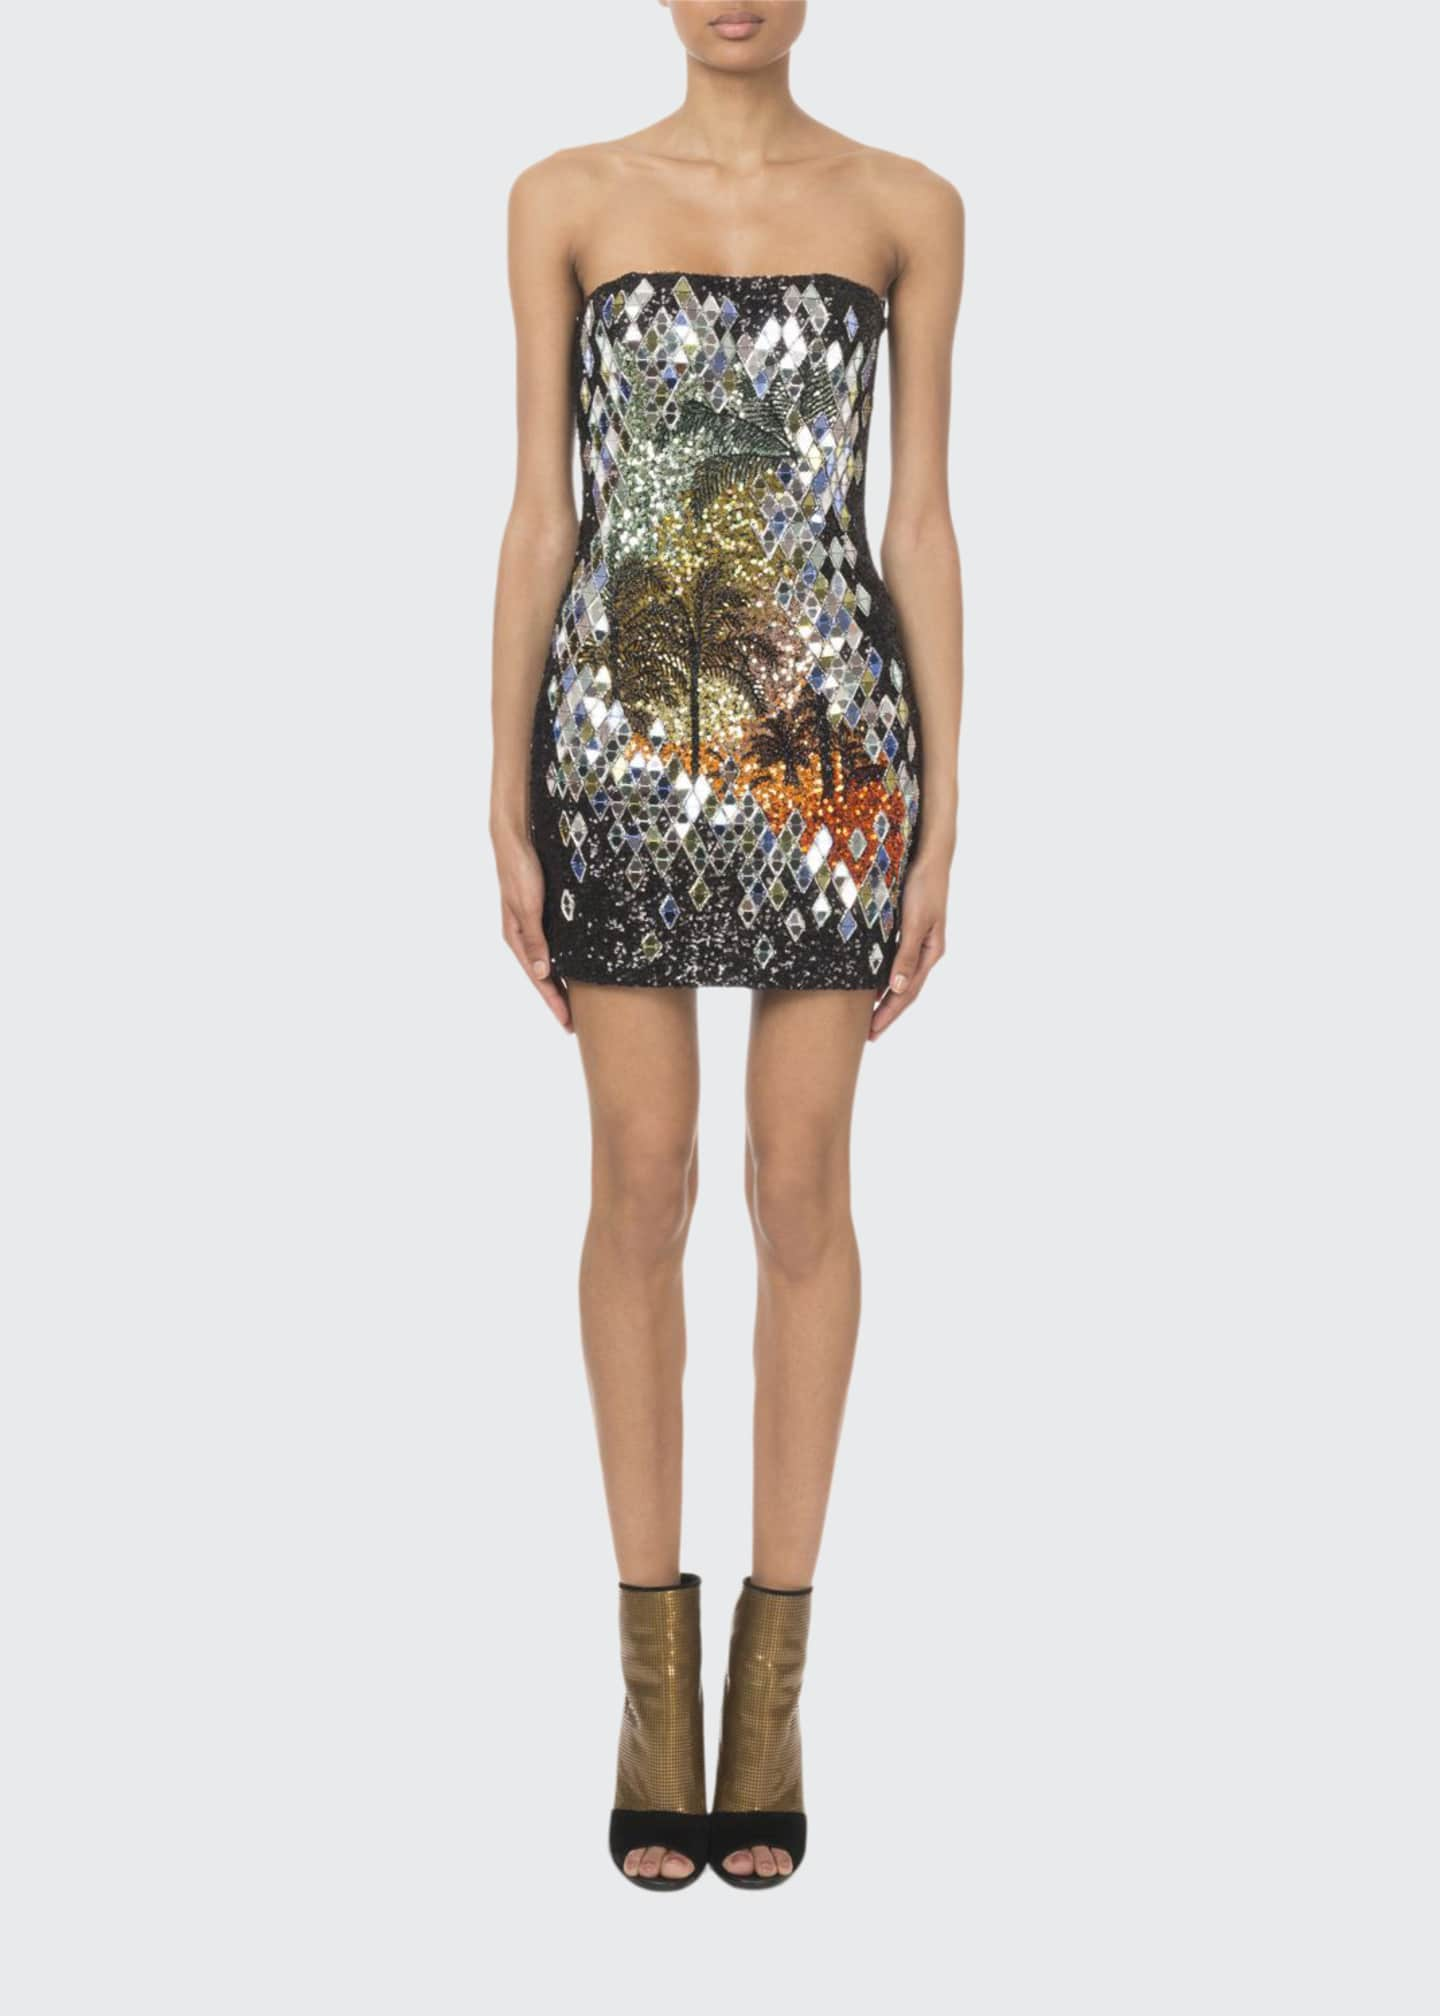 Balmain Strapless Mirror-Sequined Palm-Tree Mini Dress